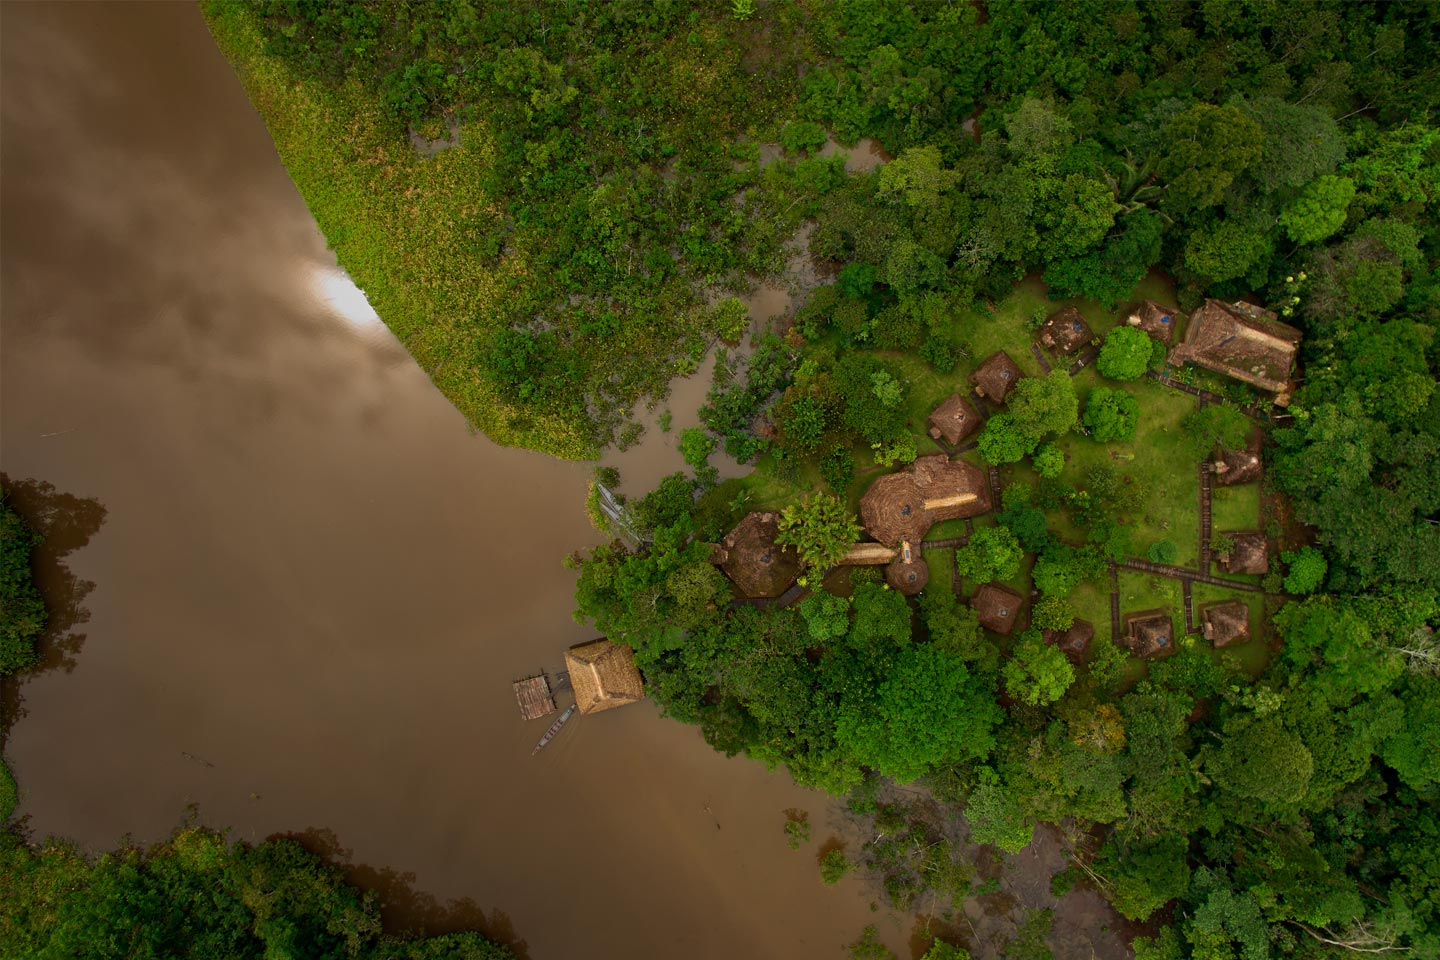 Aerial view of Sani Lodge